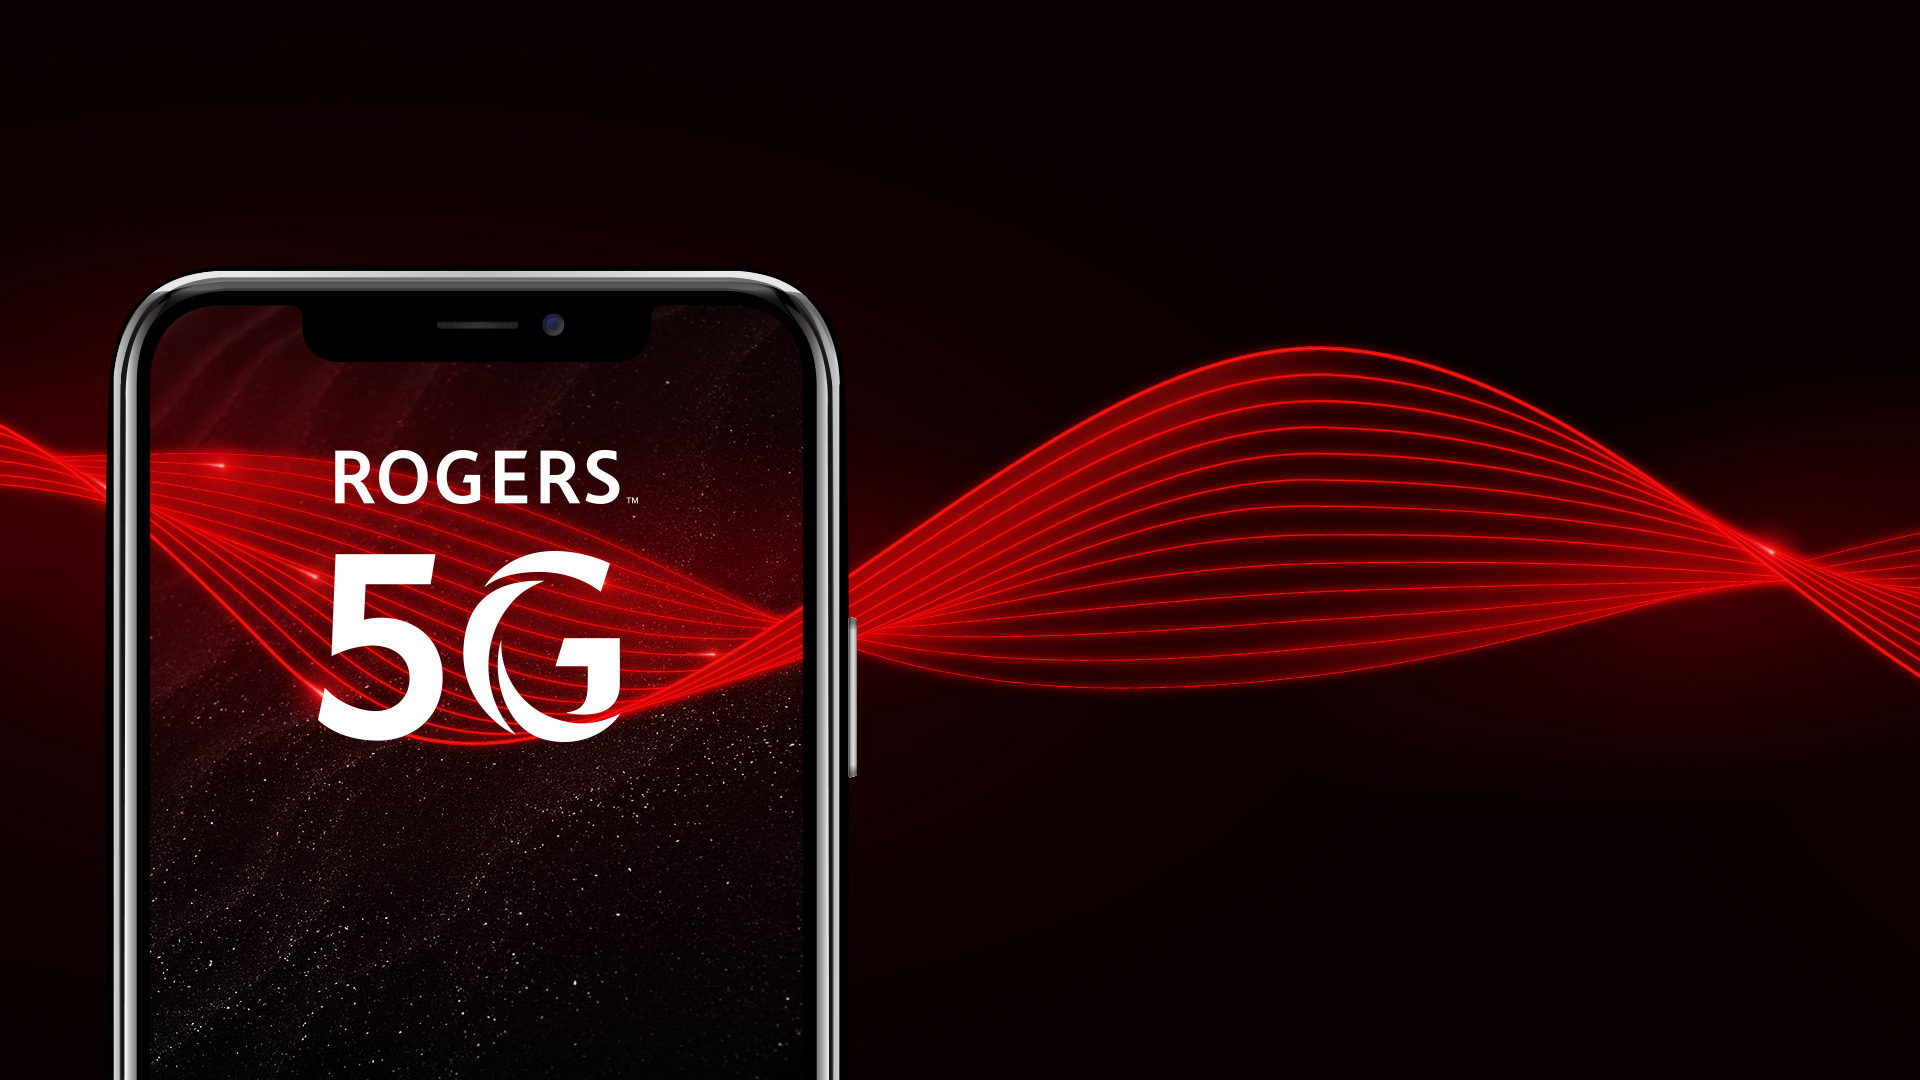 Rogers was the first to make 5G available to Canadians